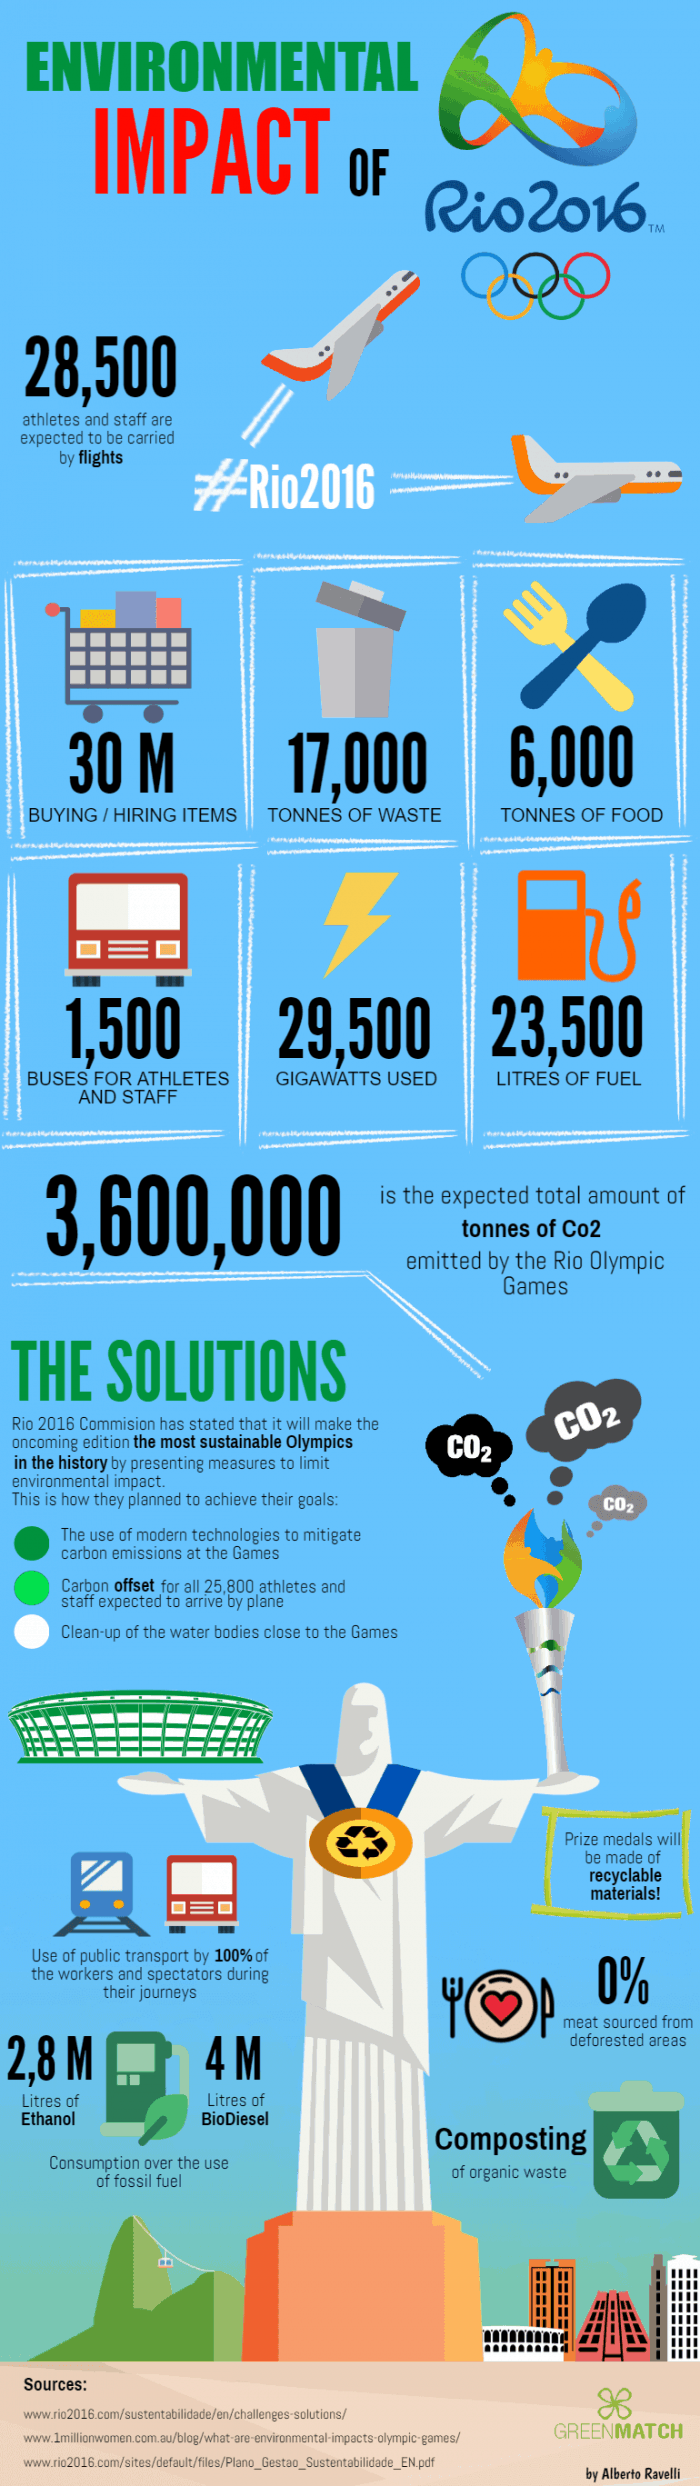 Environmental impact of rio 2016